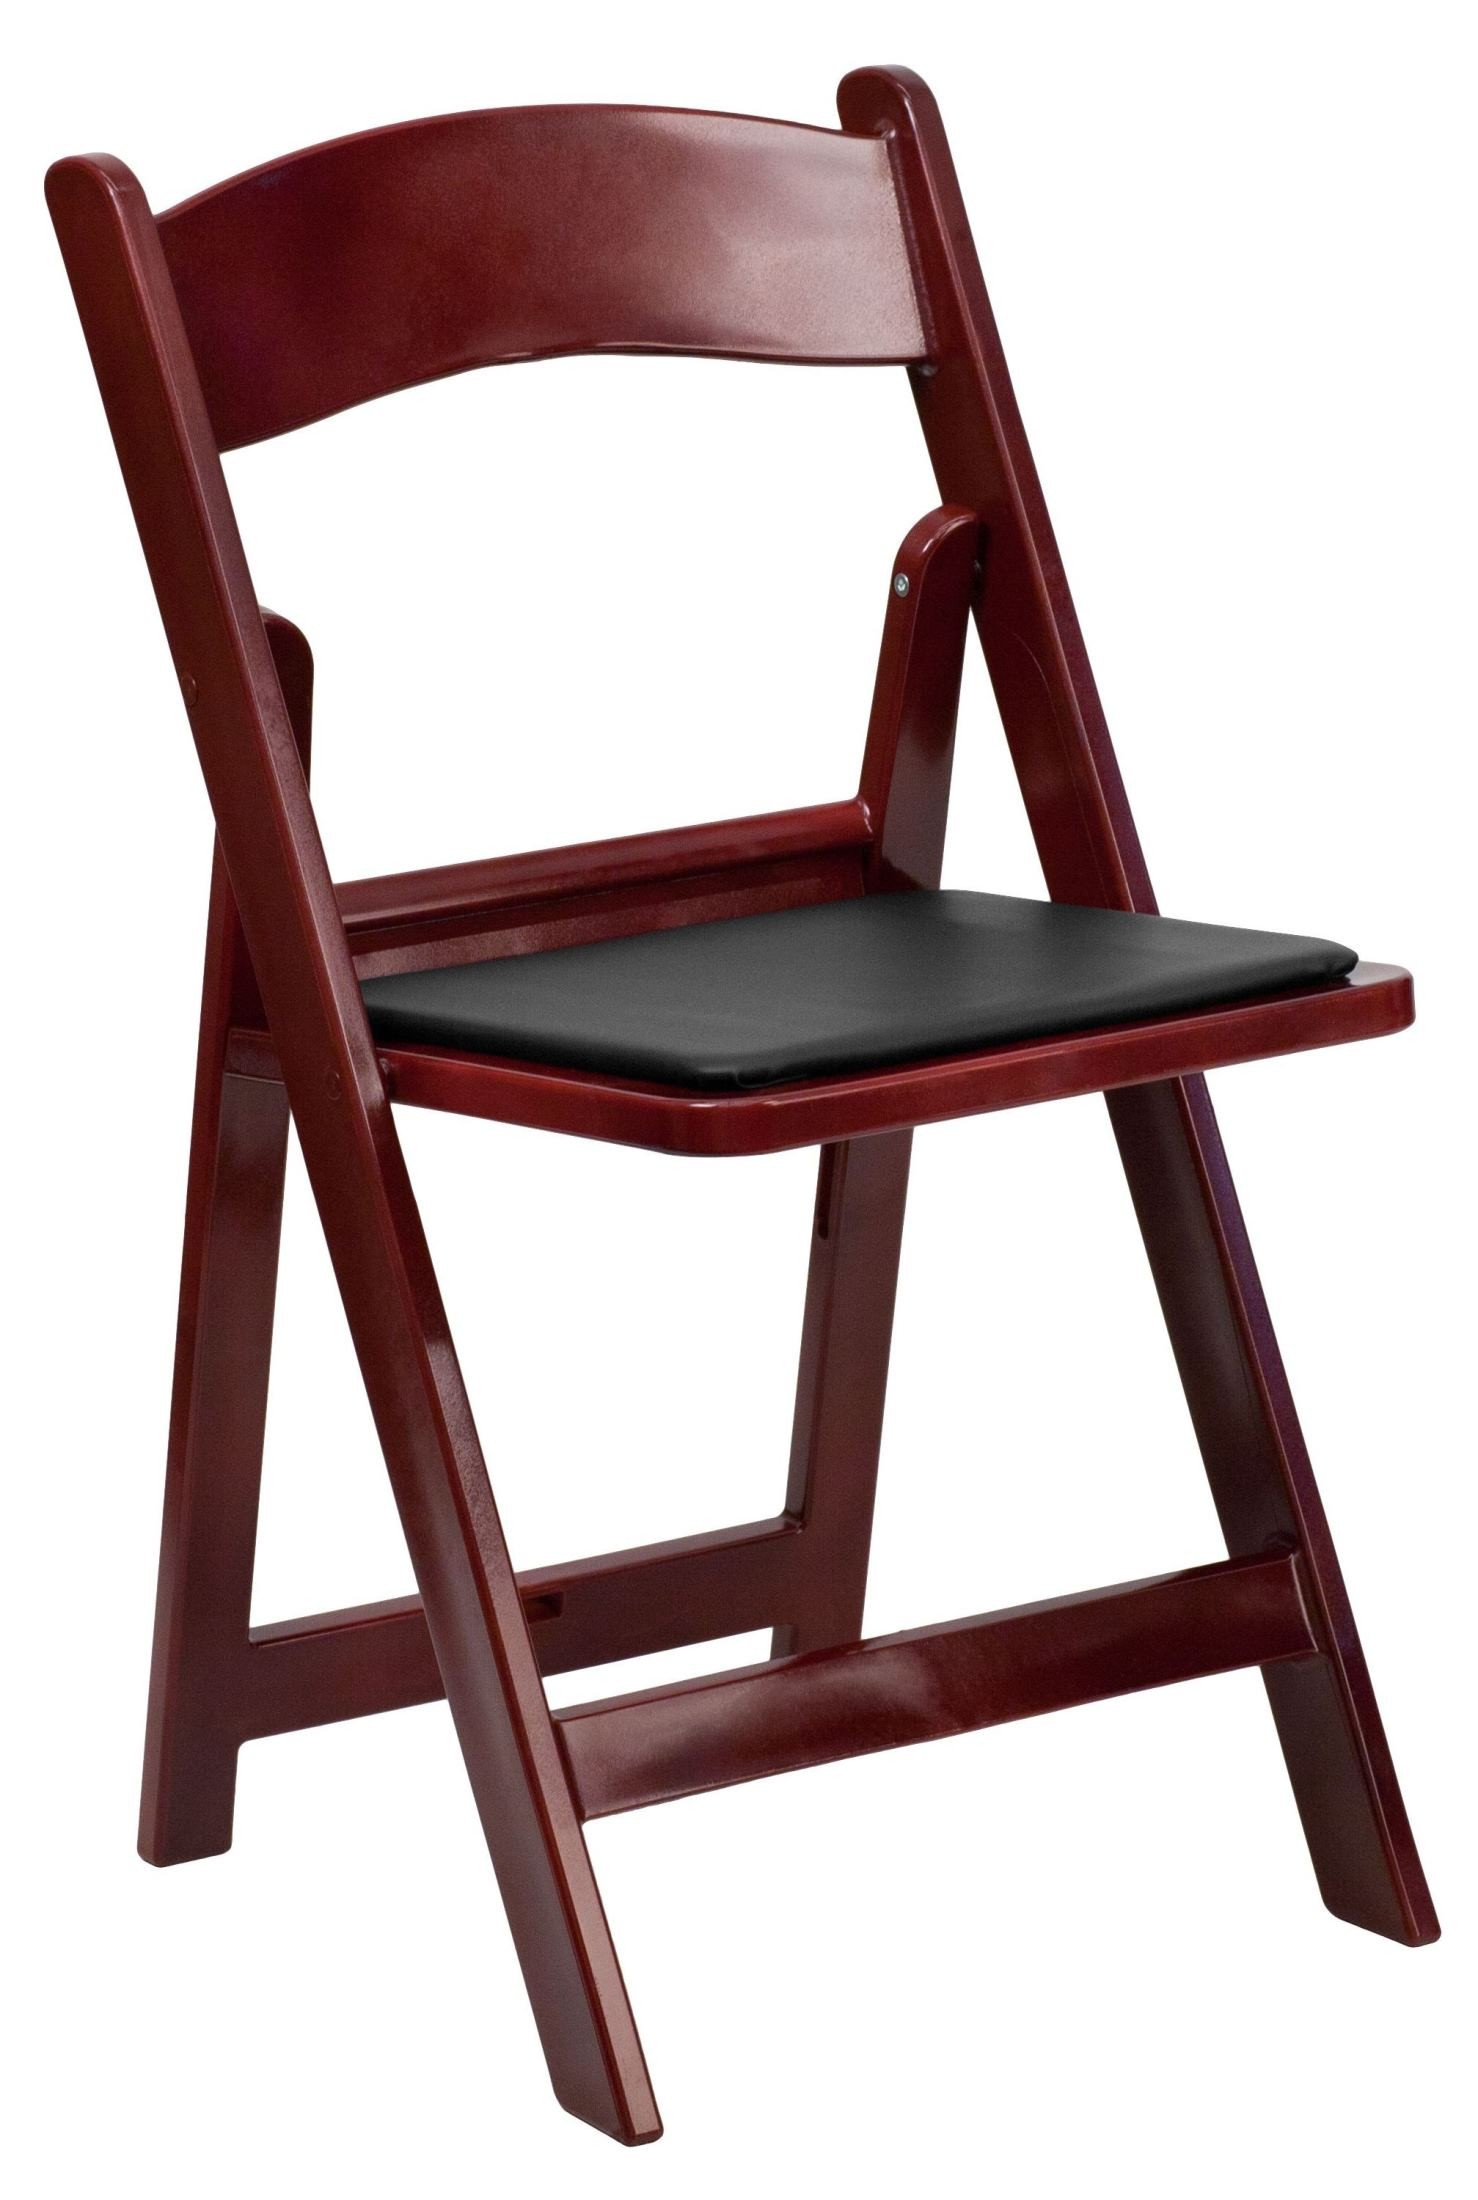 Hercules Series Red Mahogany Resin Vinyl Folding Chair From Renegade Colema